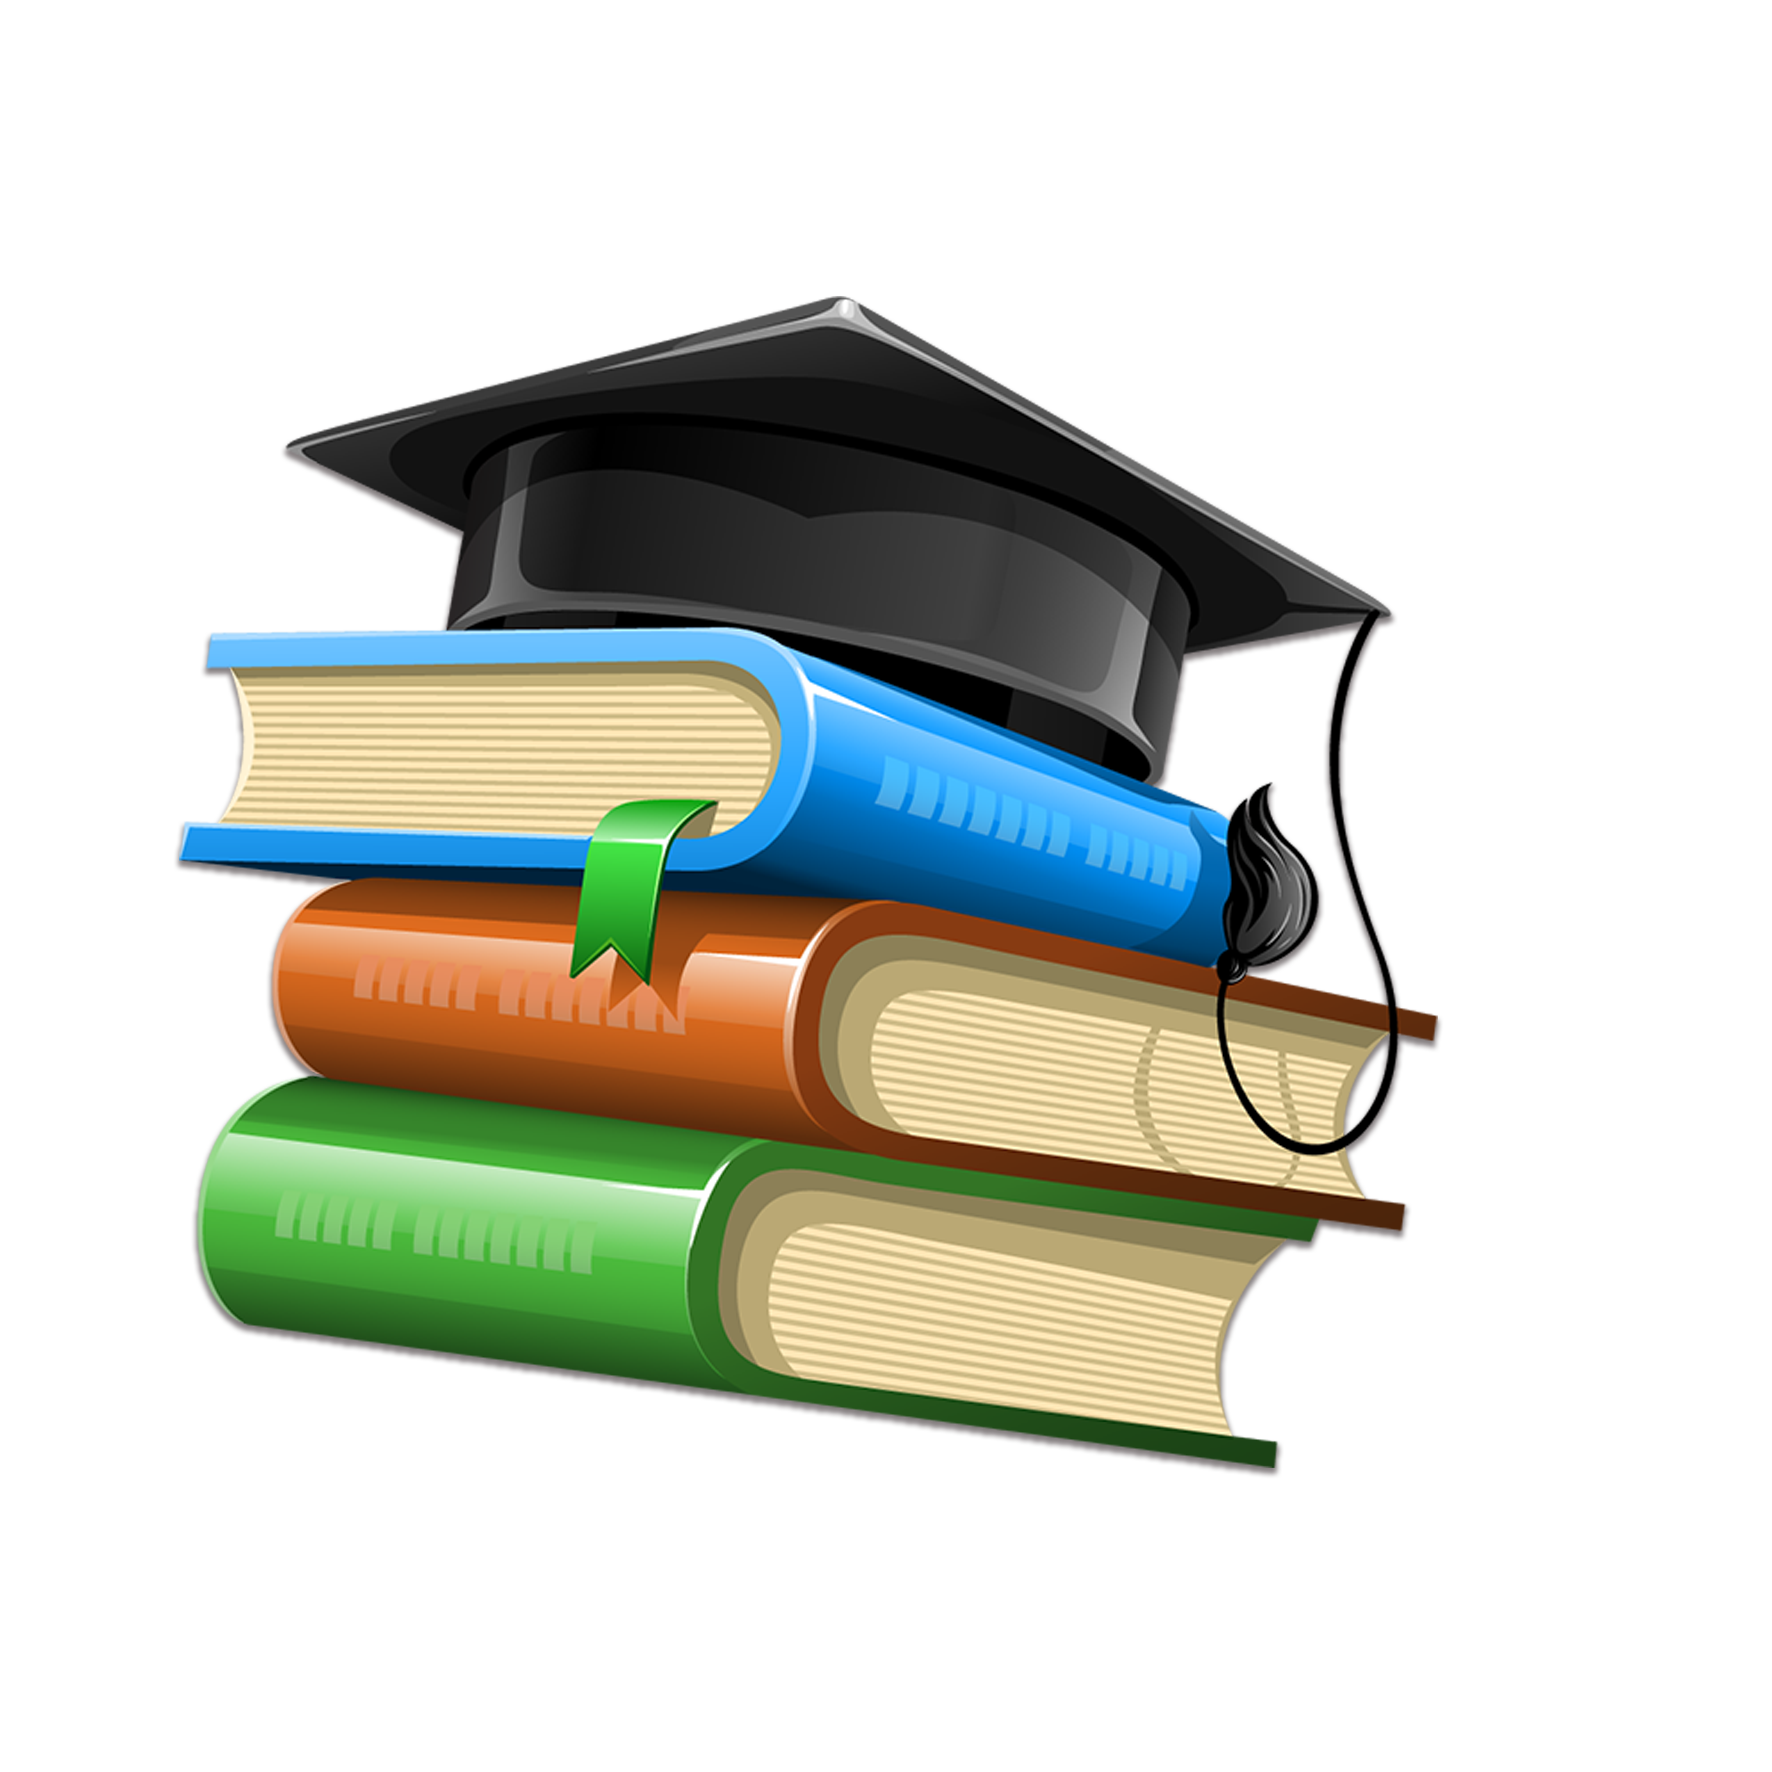 Book cover royalty free. Diploma clipart official document